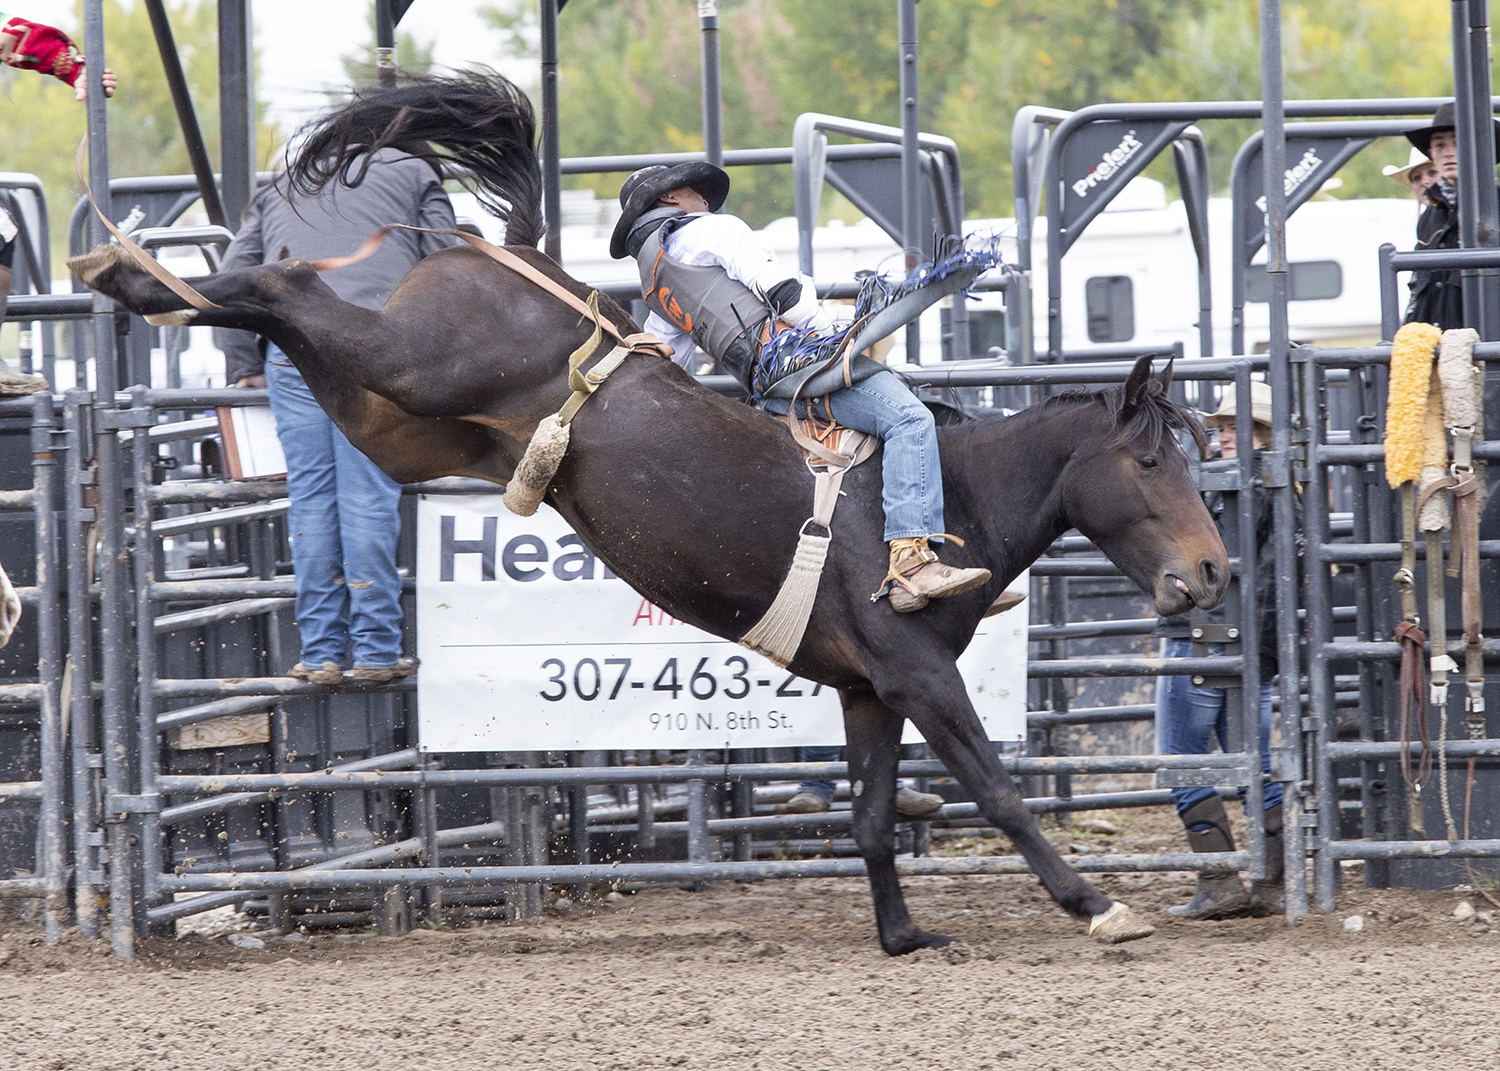 Rustler cowboy, Rickey Williams hangs on in the bareback riding